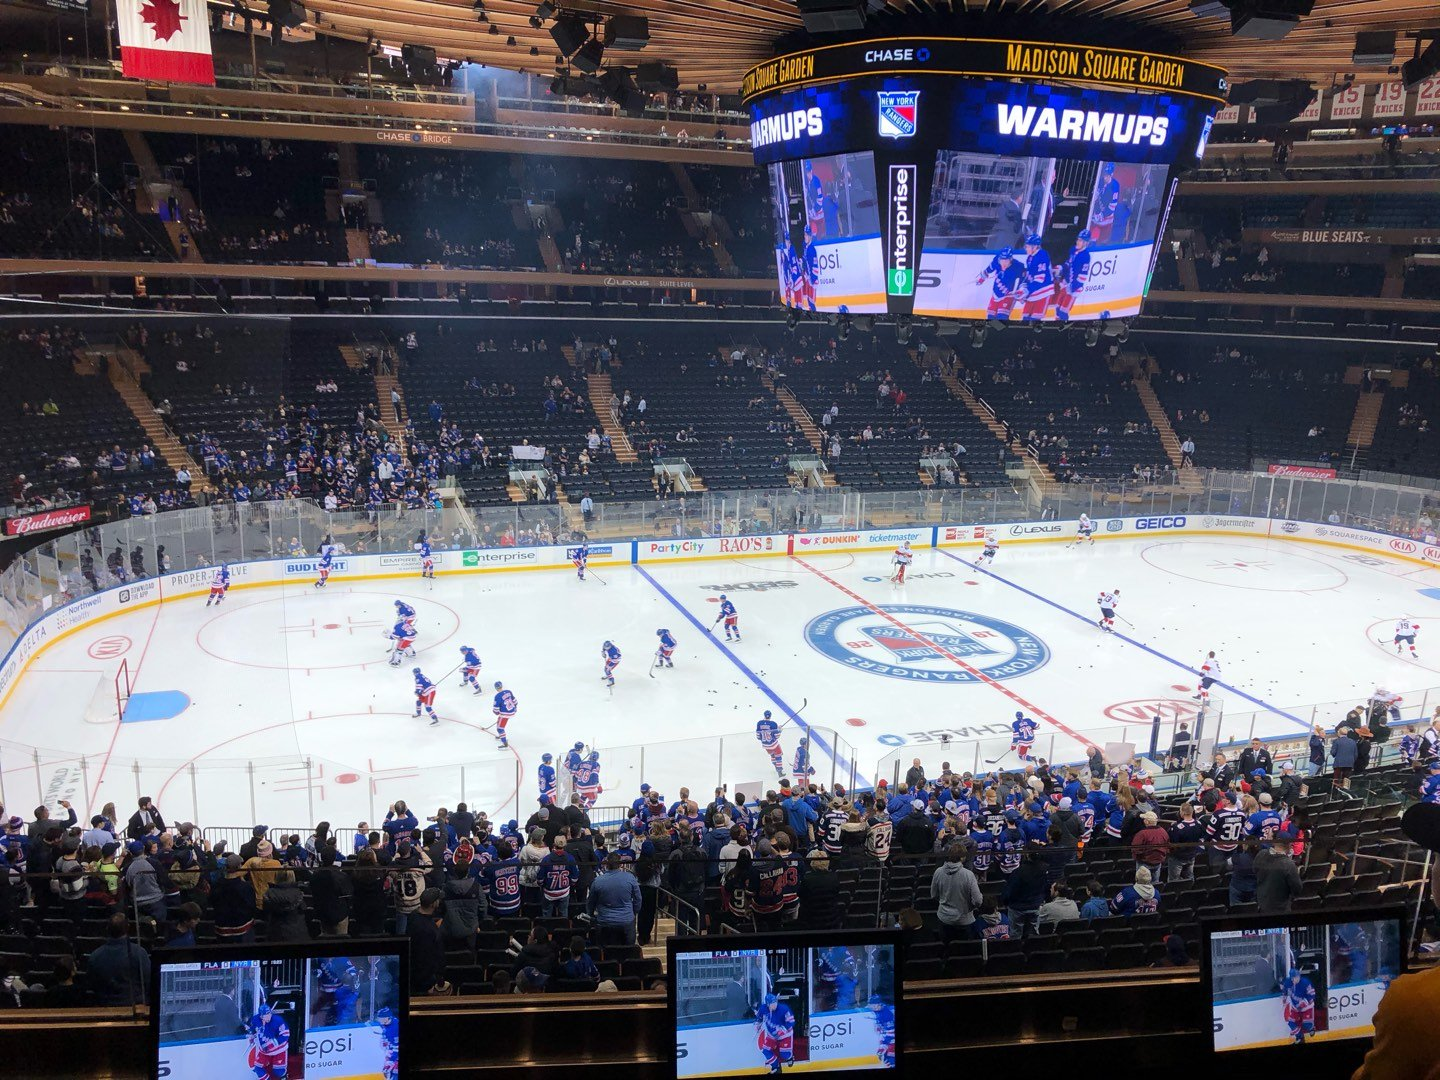 Madison Square Garden Section 209 Row 3 Seat 9